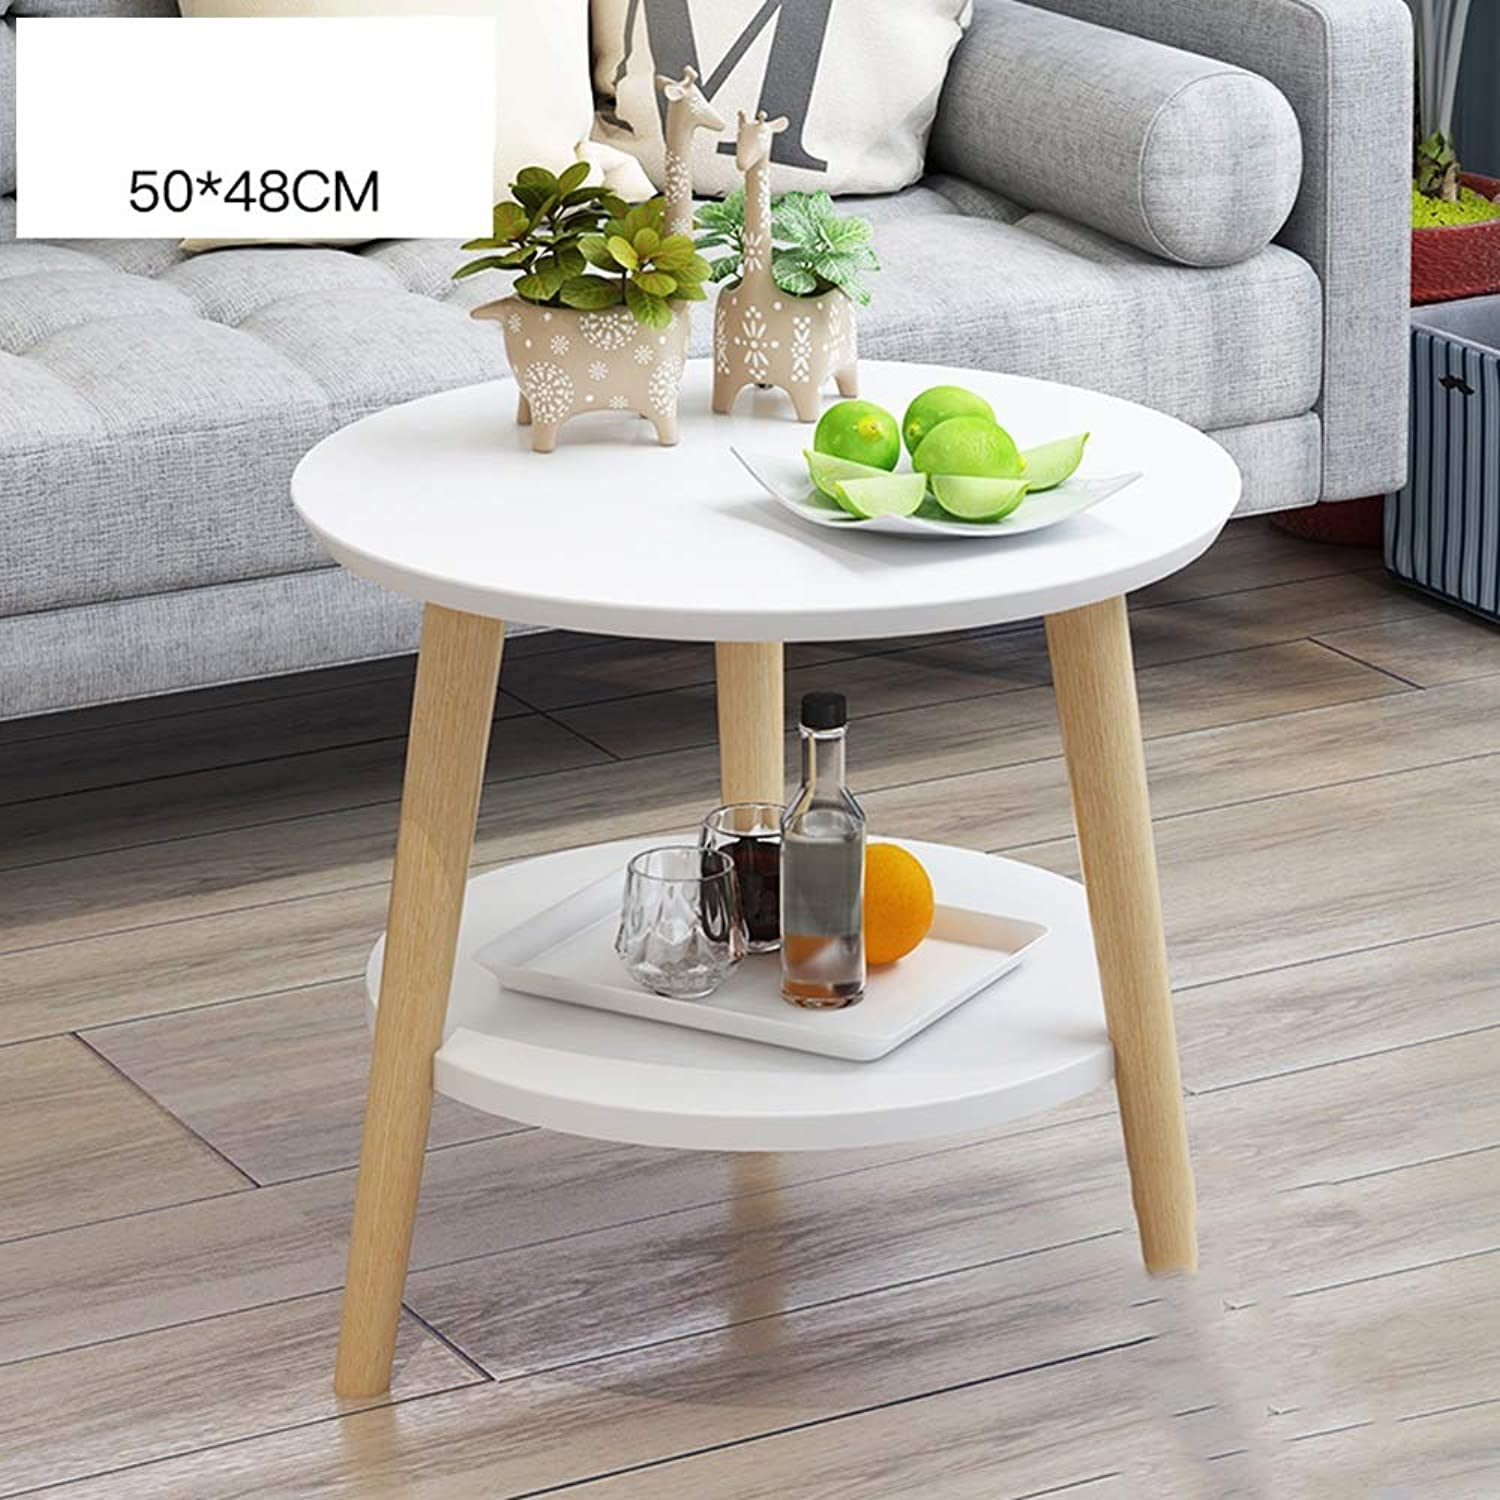 YNN Small Coffee Table Small Round Table Solid Wood Simple Leisure Bay Window Table (color   White, Size   50cm)